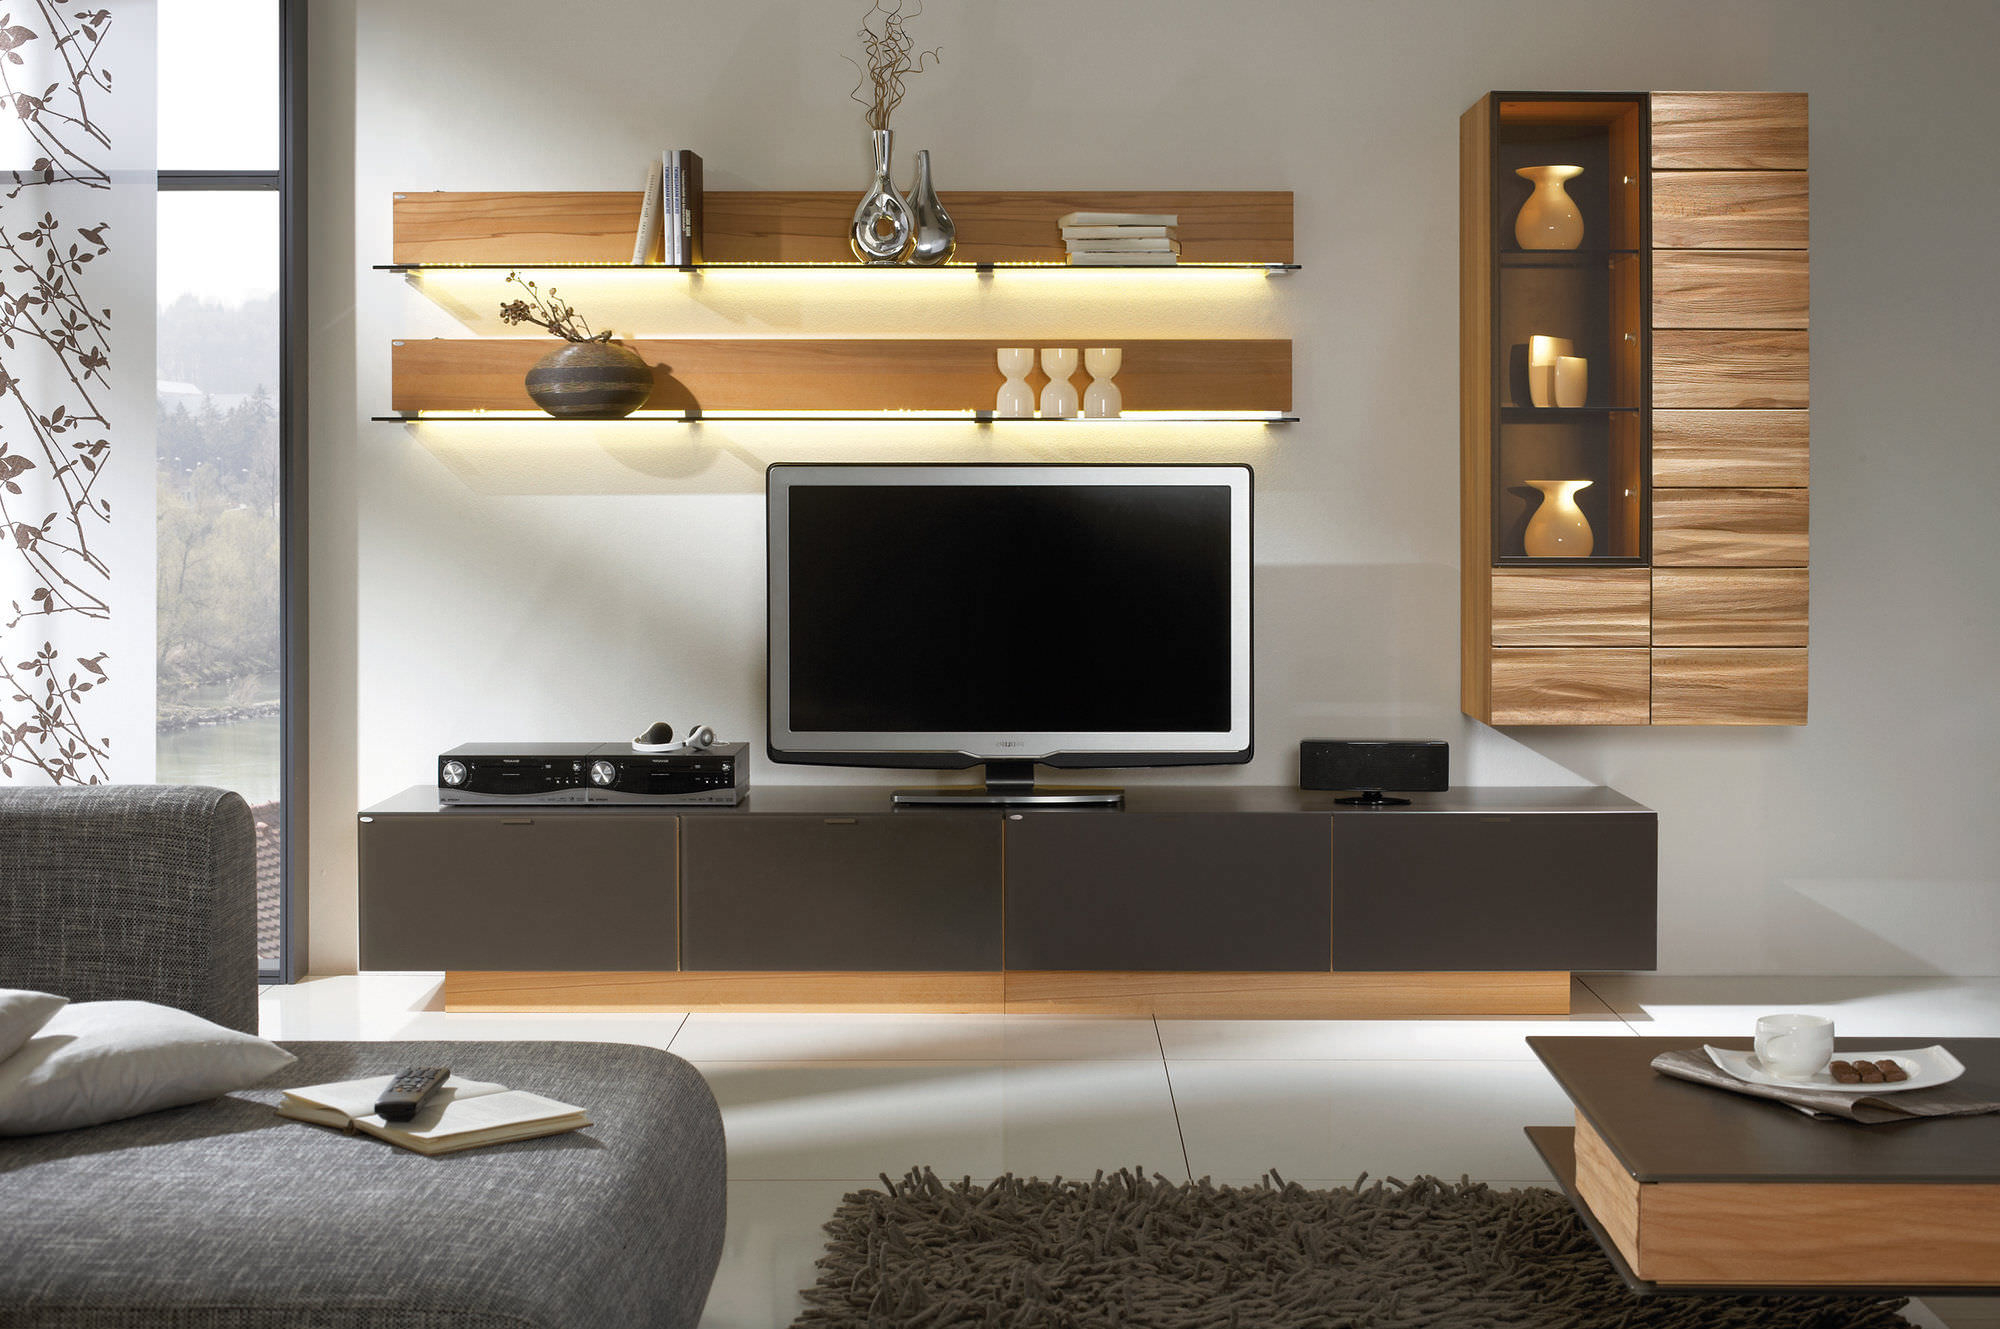 Widely Used Contemporary Tv Wall Units Within Contemporary Tv Wall Unit / Wooden / Glass – V Montana – Voglauer (View 15 of 20)